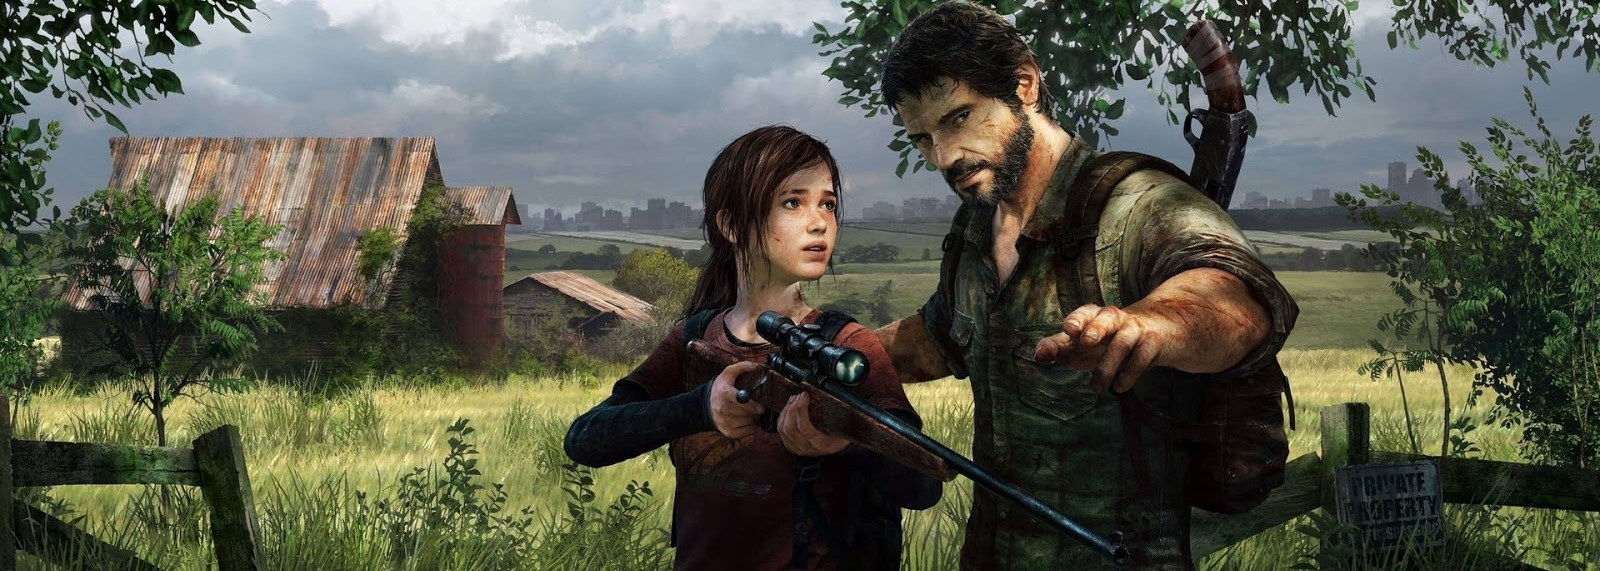 ellie-and-joel-the-last-of-us-20908-1920x1080